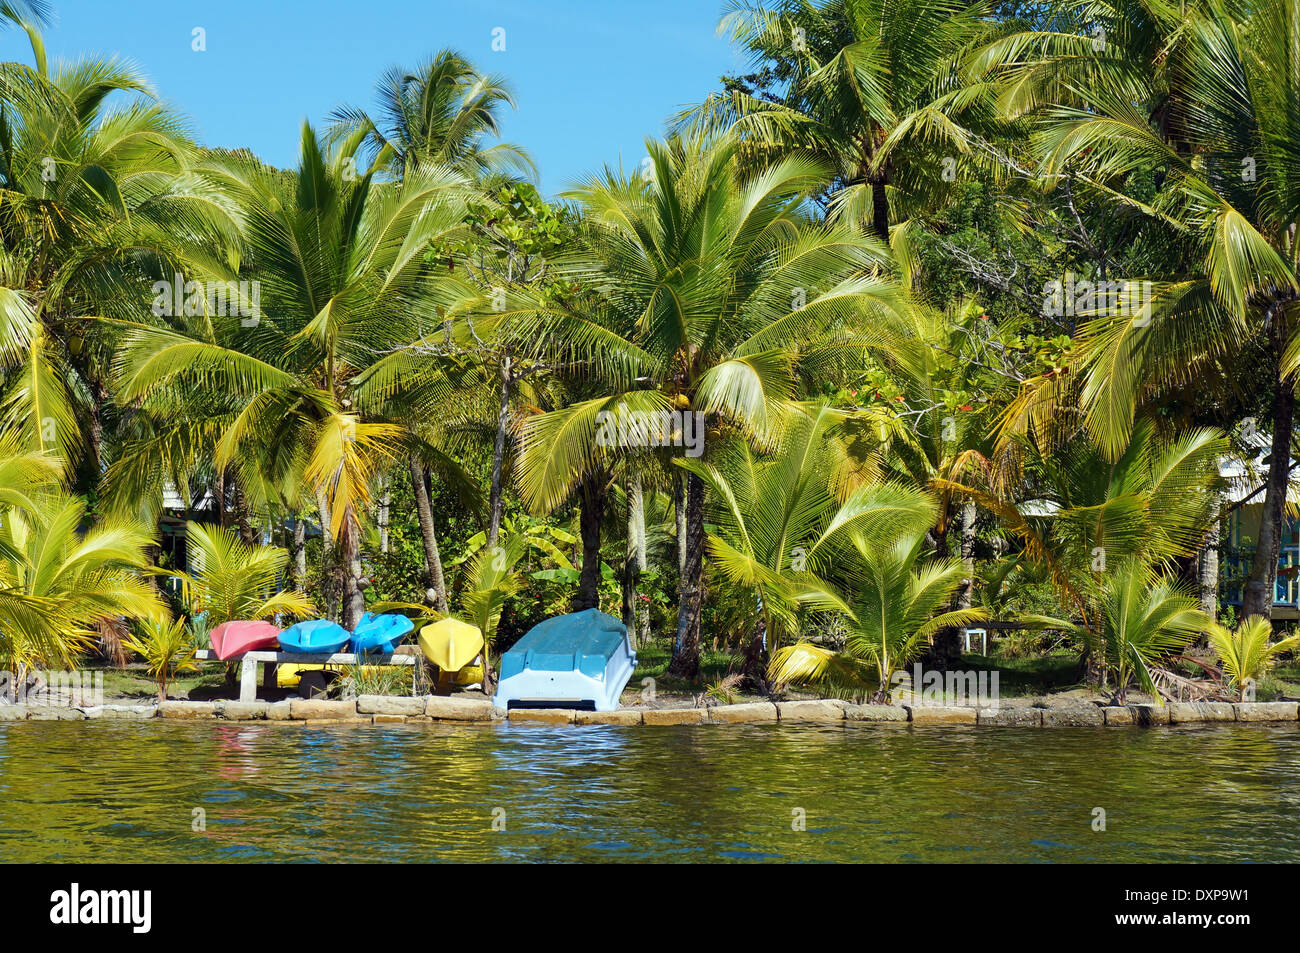 island palm trees tropical caribbean stock photos island palm trees tropical caribbean stock. Black Bedroom Furniture Sets. Home Design Ideas